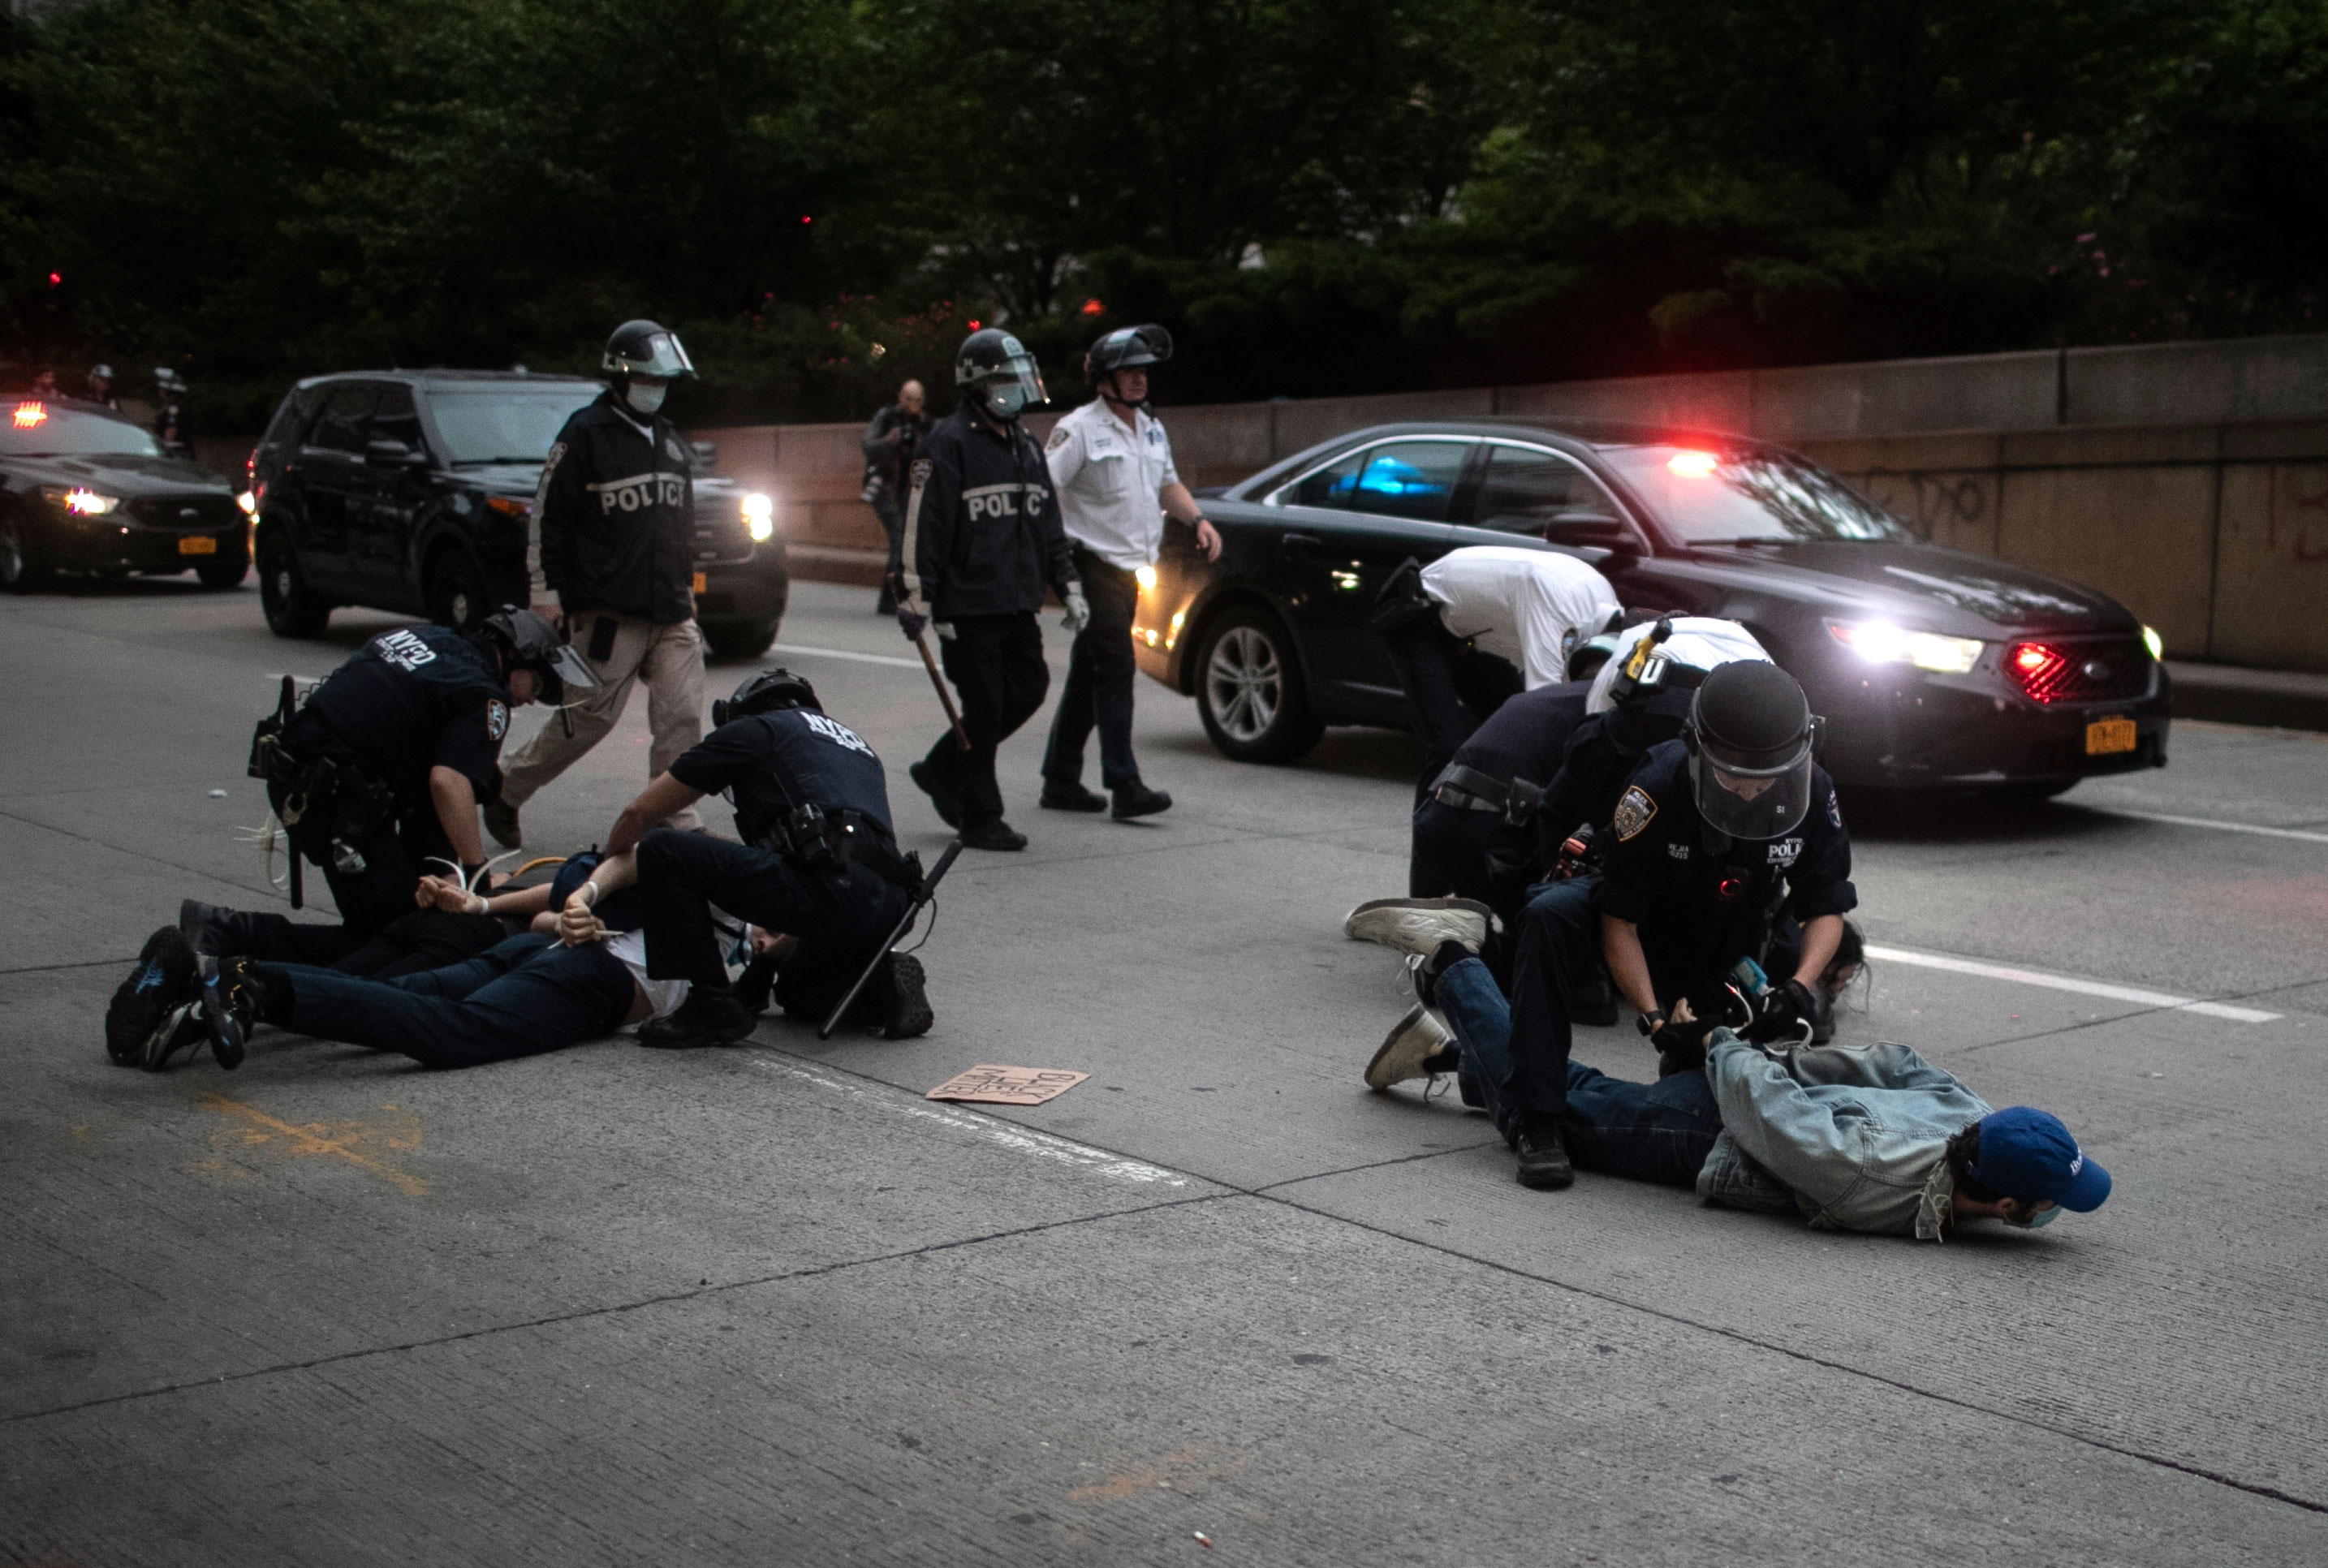 Police arrest protesters after curfew on June 2, in New York.